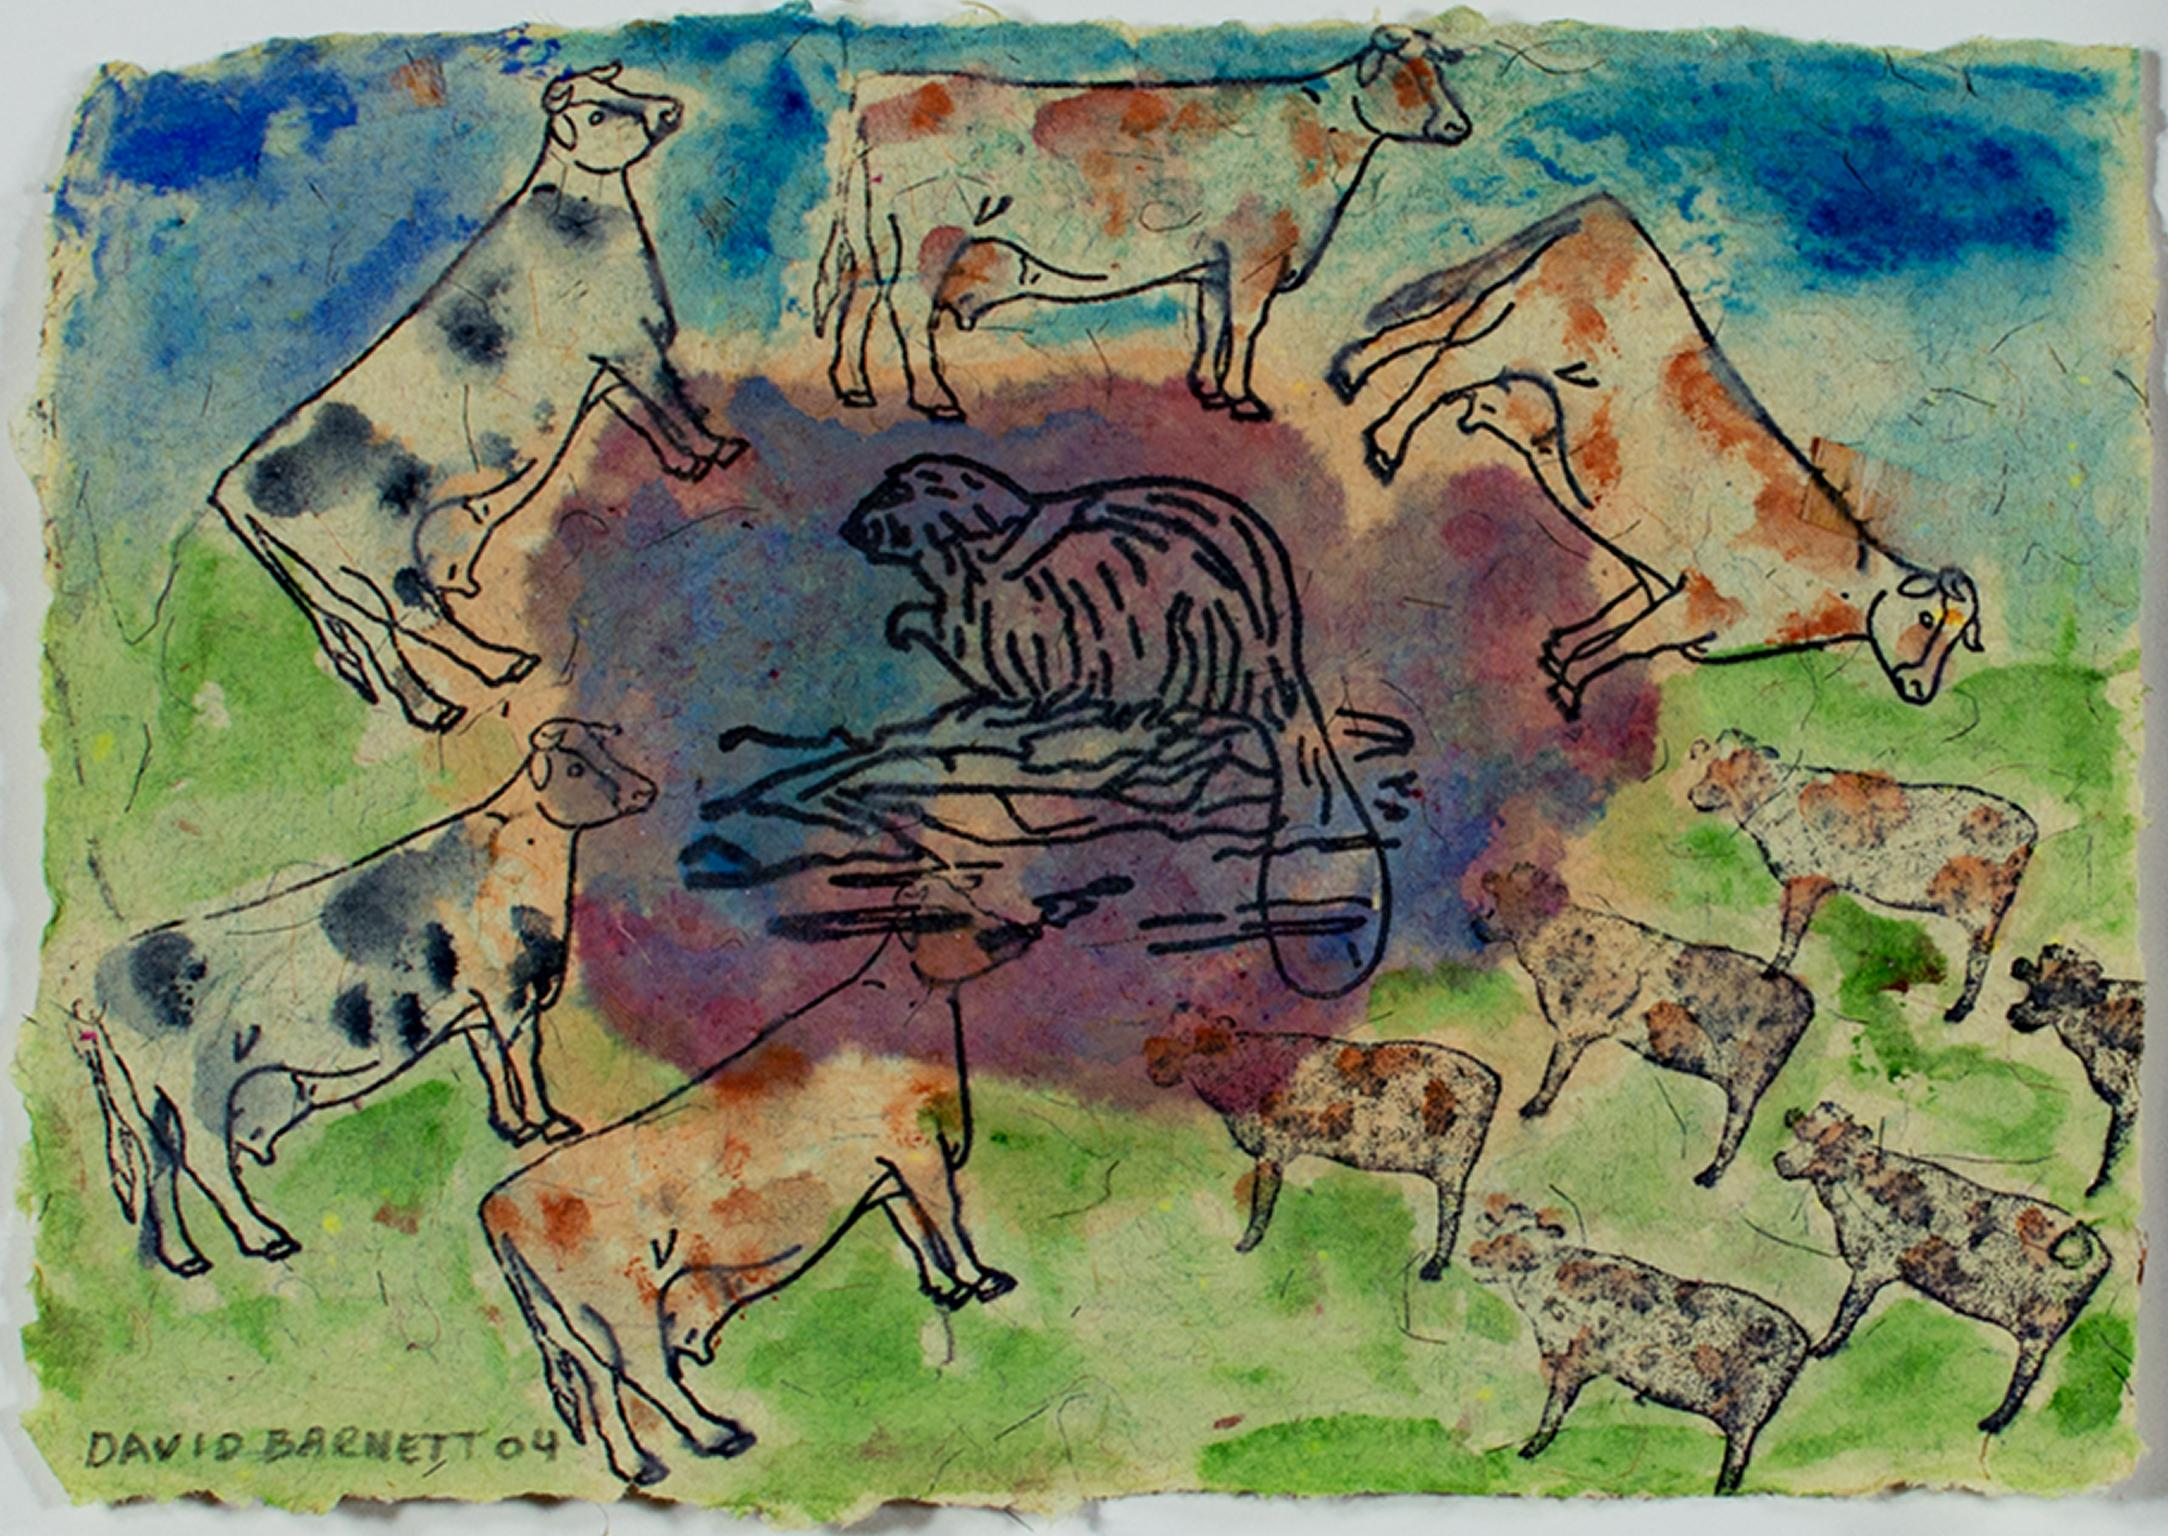 """""""Beaver Lake Beaver with Surround Sound Cows"""" signed by David and Sarah Barnett"""